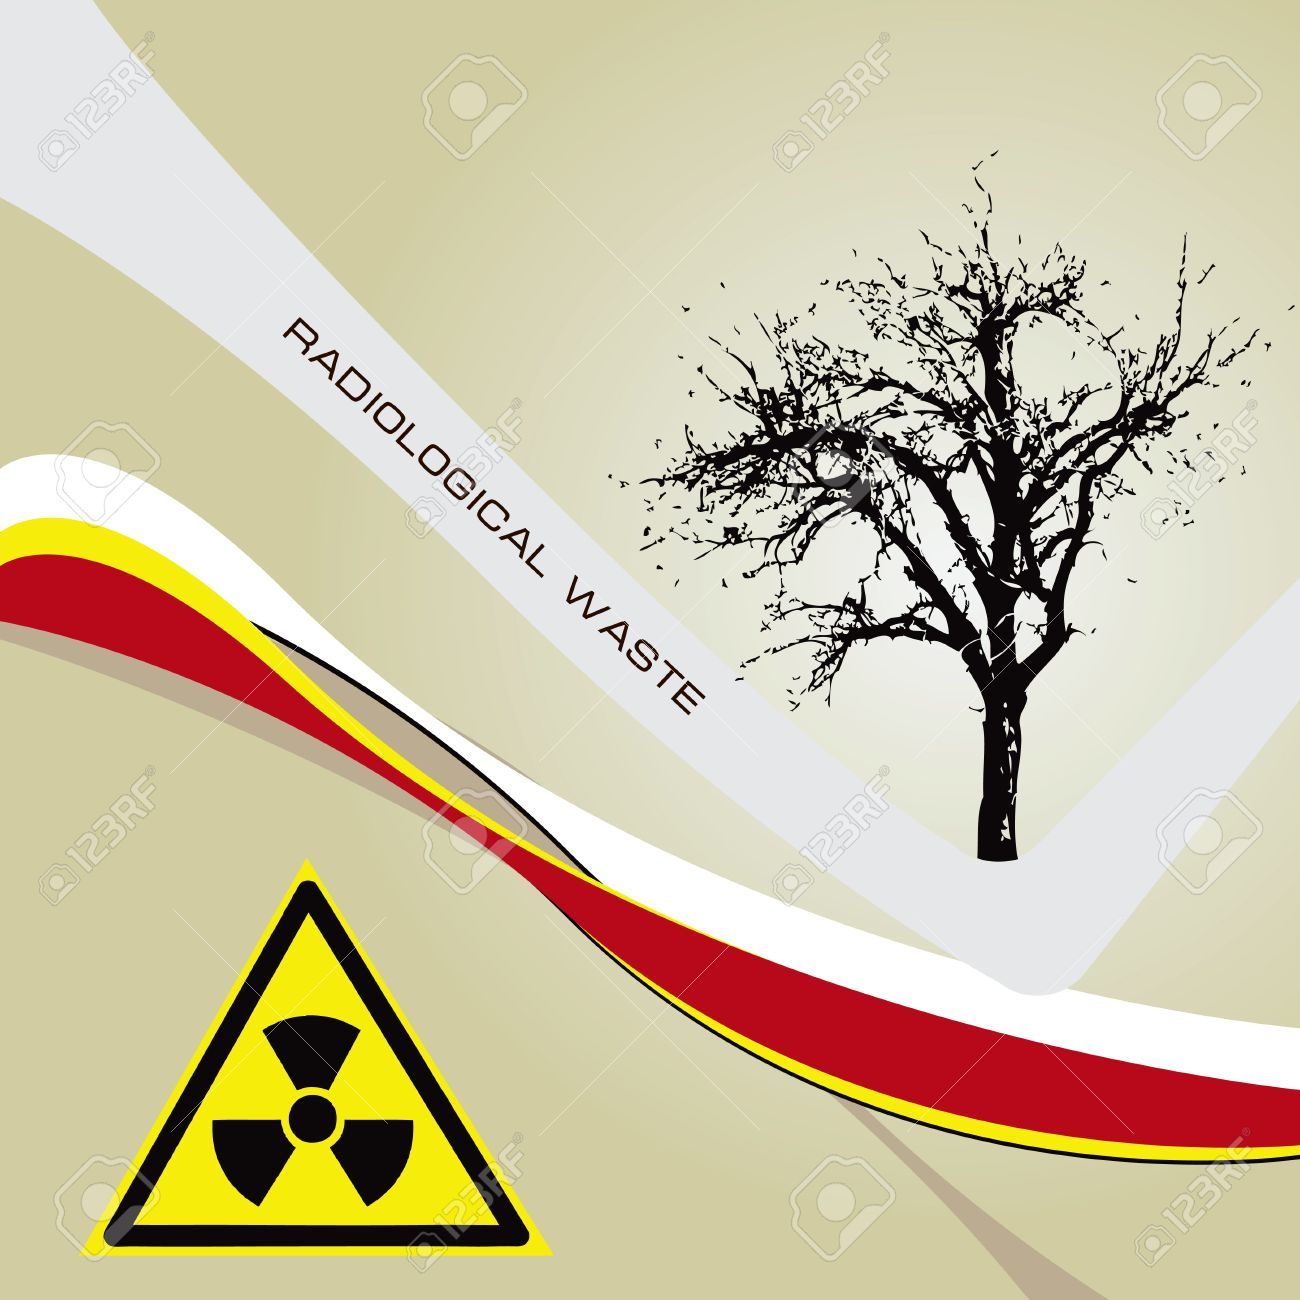 Background Radiation Waste With A Radioactive Symbol Of Danger.